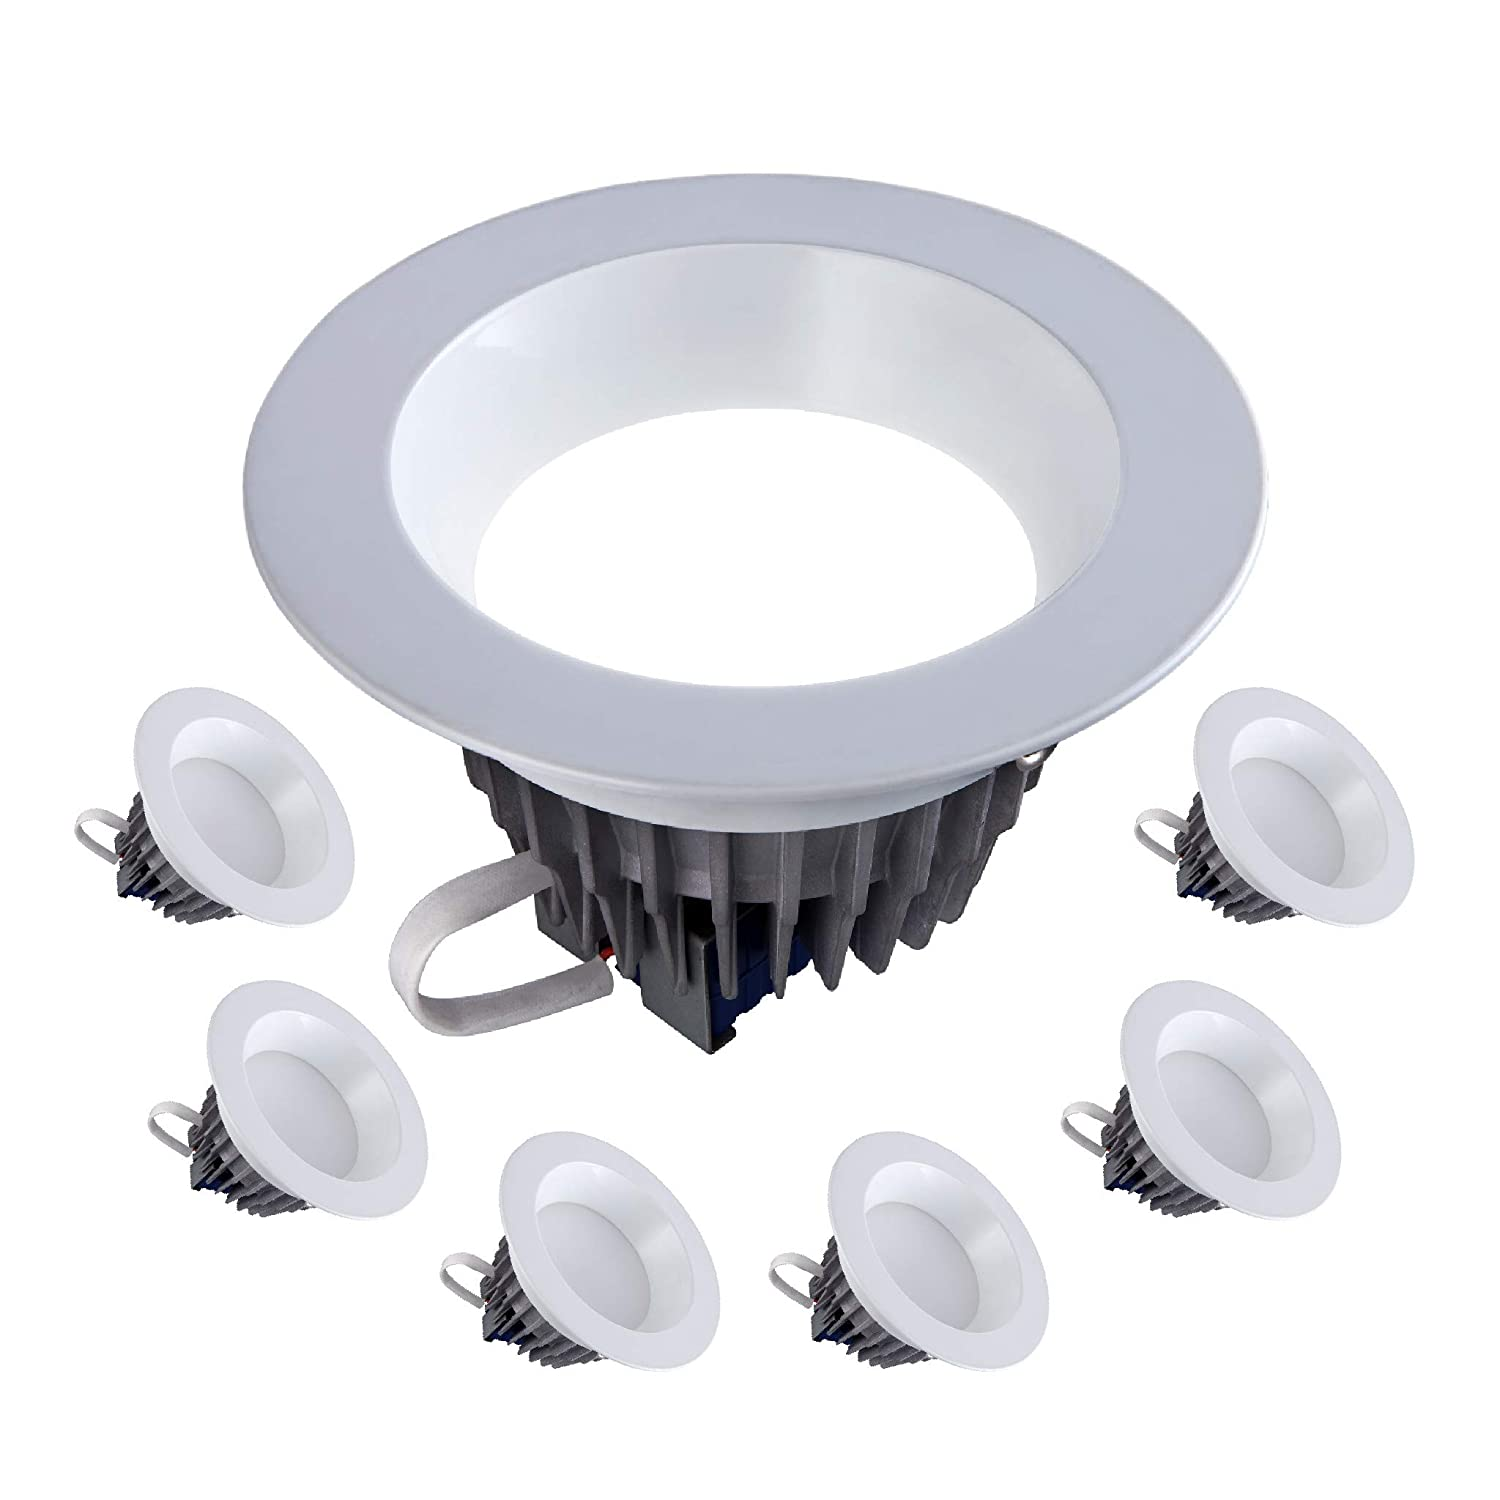 120V-277V; 1500 Lumens; Dimmable; 50,000 Life Hours; Wet Location Rated; Fits 6 Inch Recessed Can; UL//Energy Star; 6 Inch LED Downlight 18W= 120W Equivalent 3000K- 6 Pack